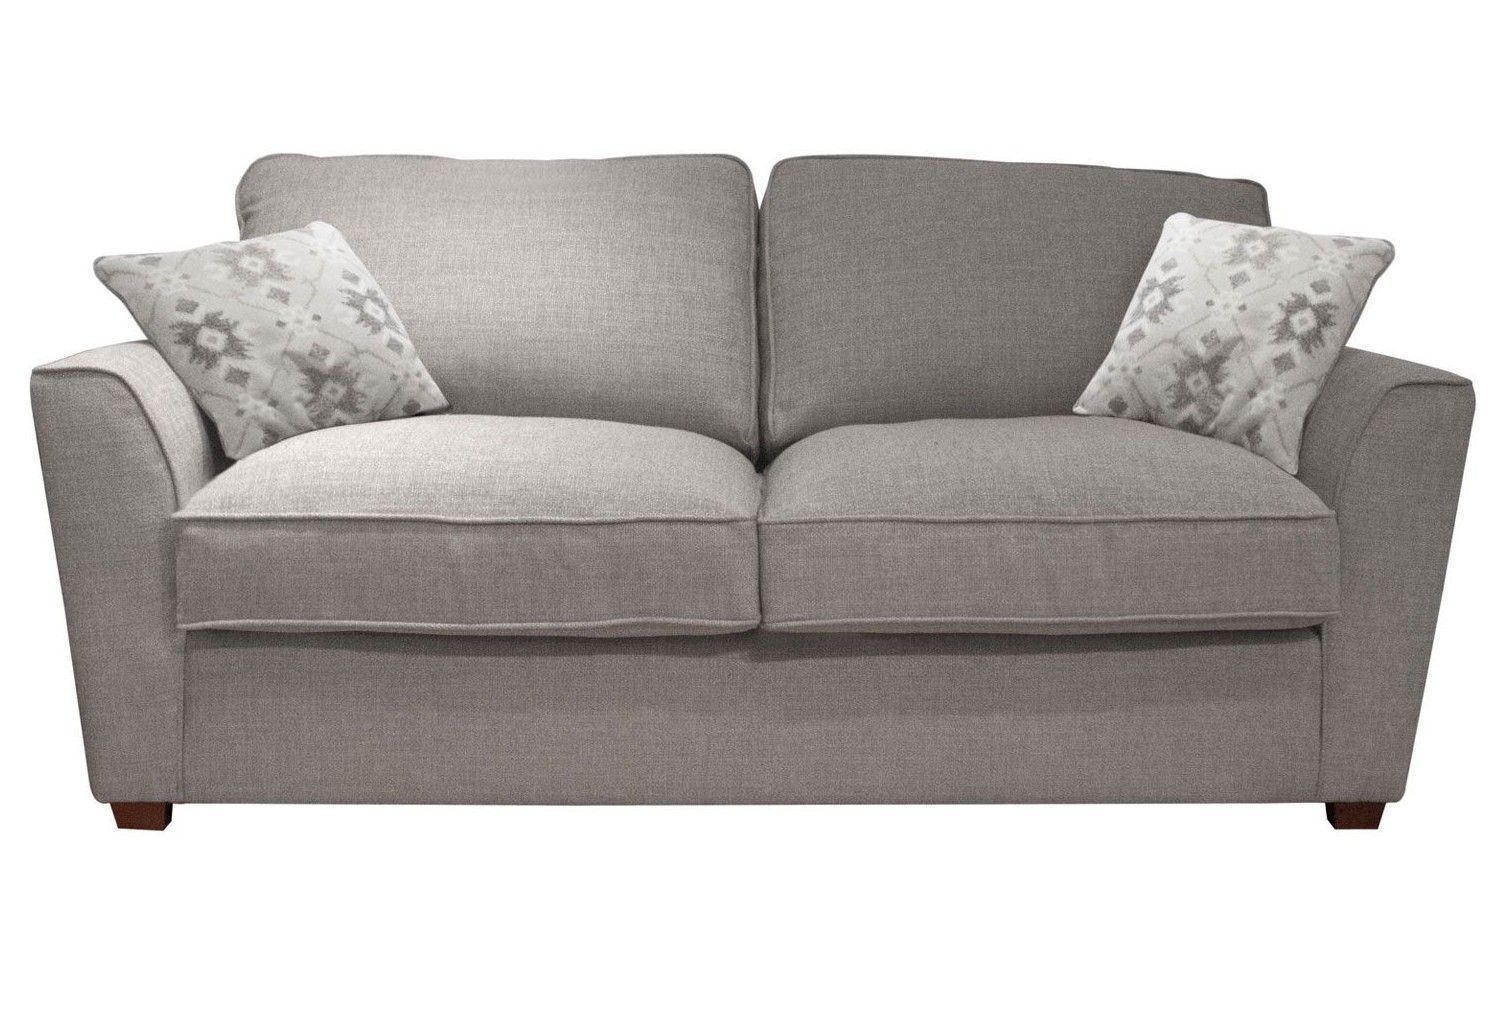 55 Reference Of Sofa Bed Harvey Norman Prices In 2020 Sofa Shop Corner Sofa Fabric Grey Leather Sofa